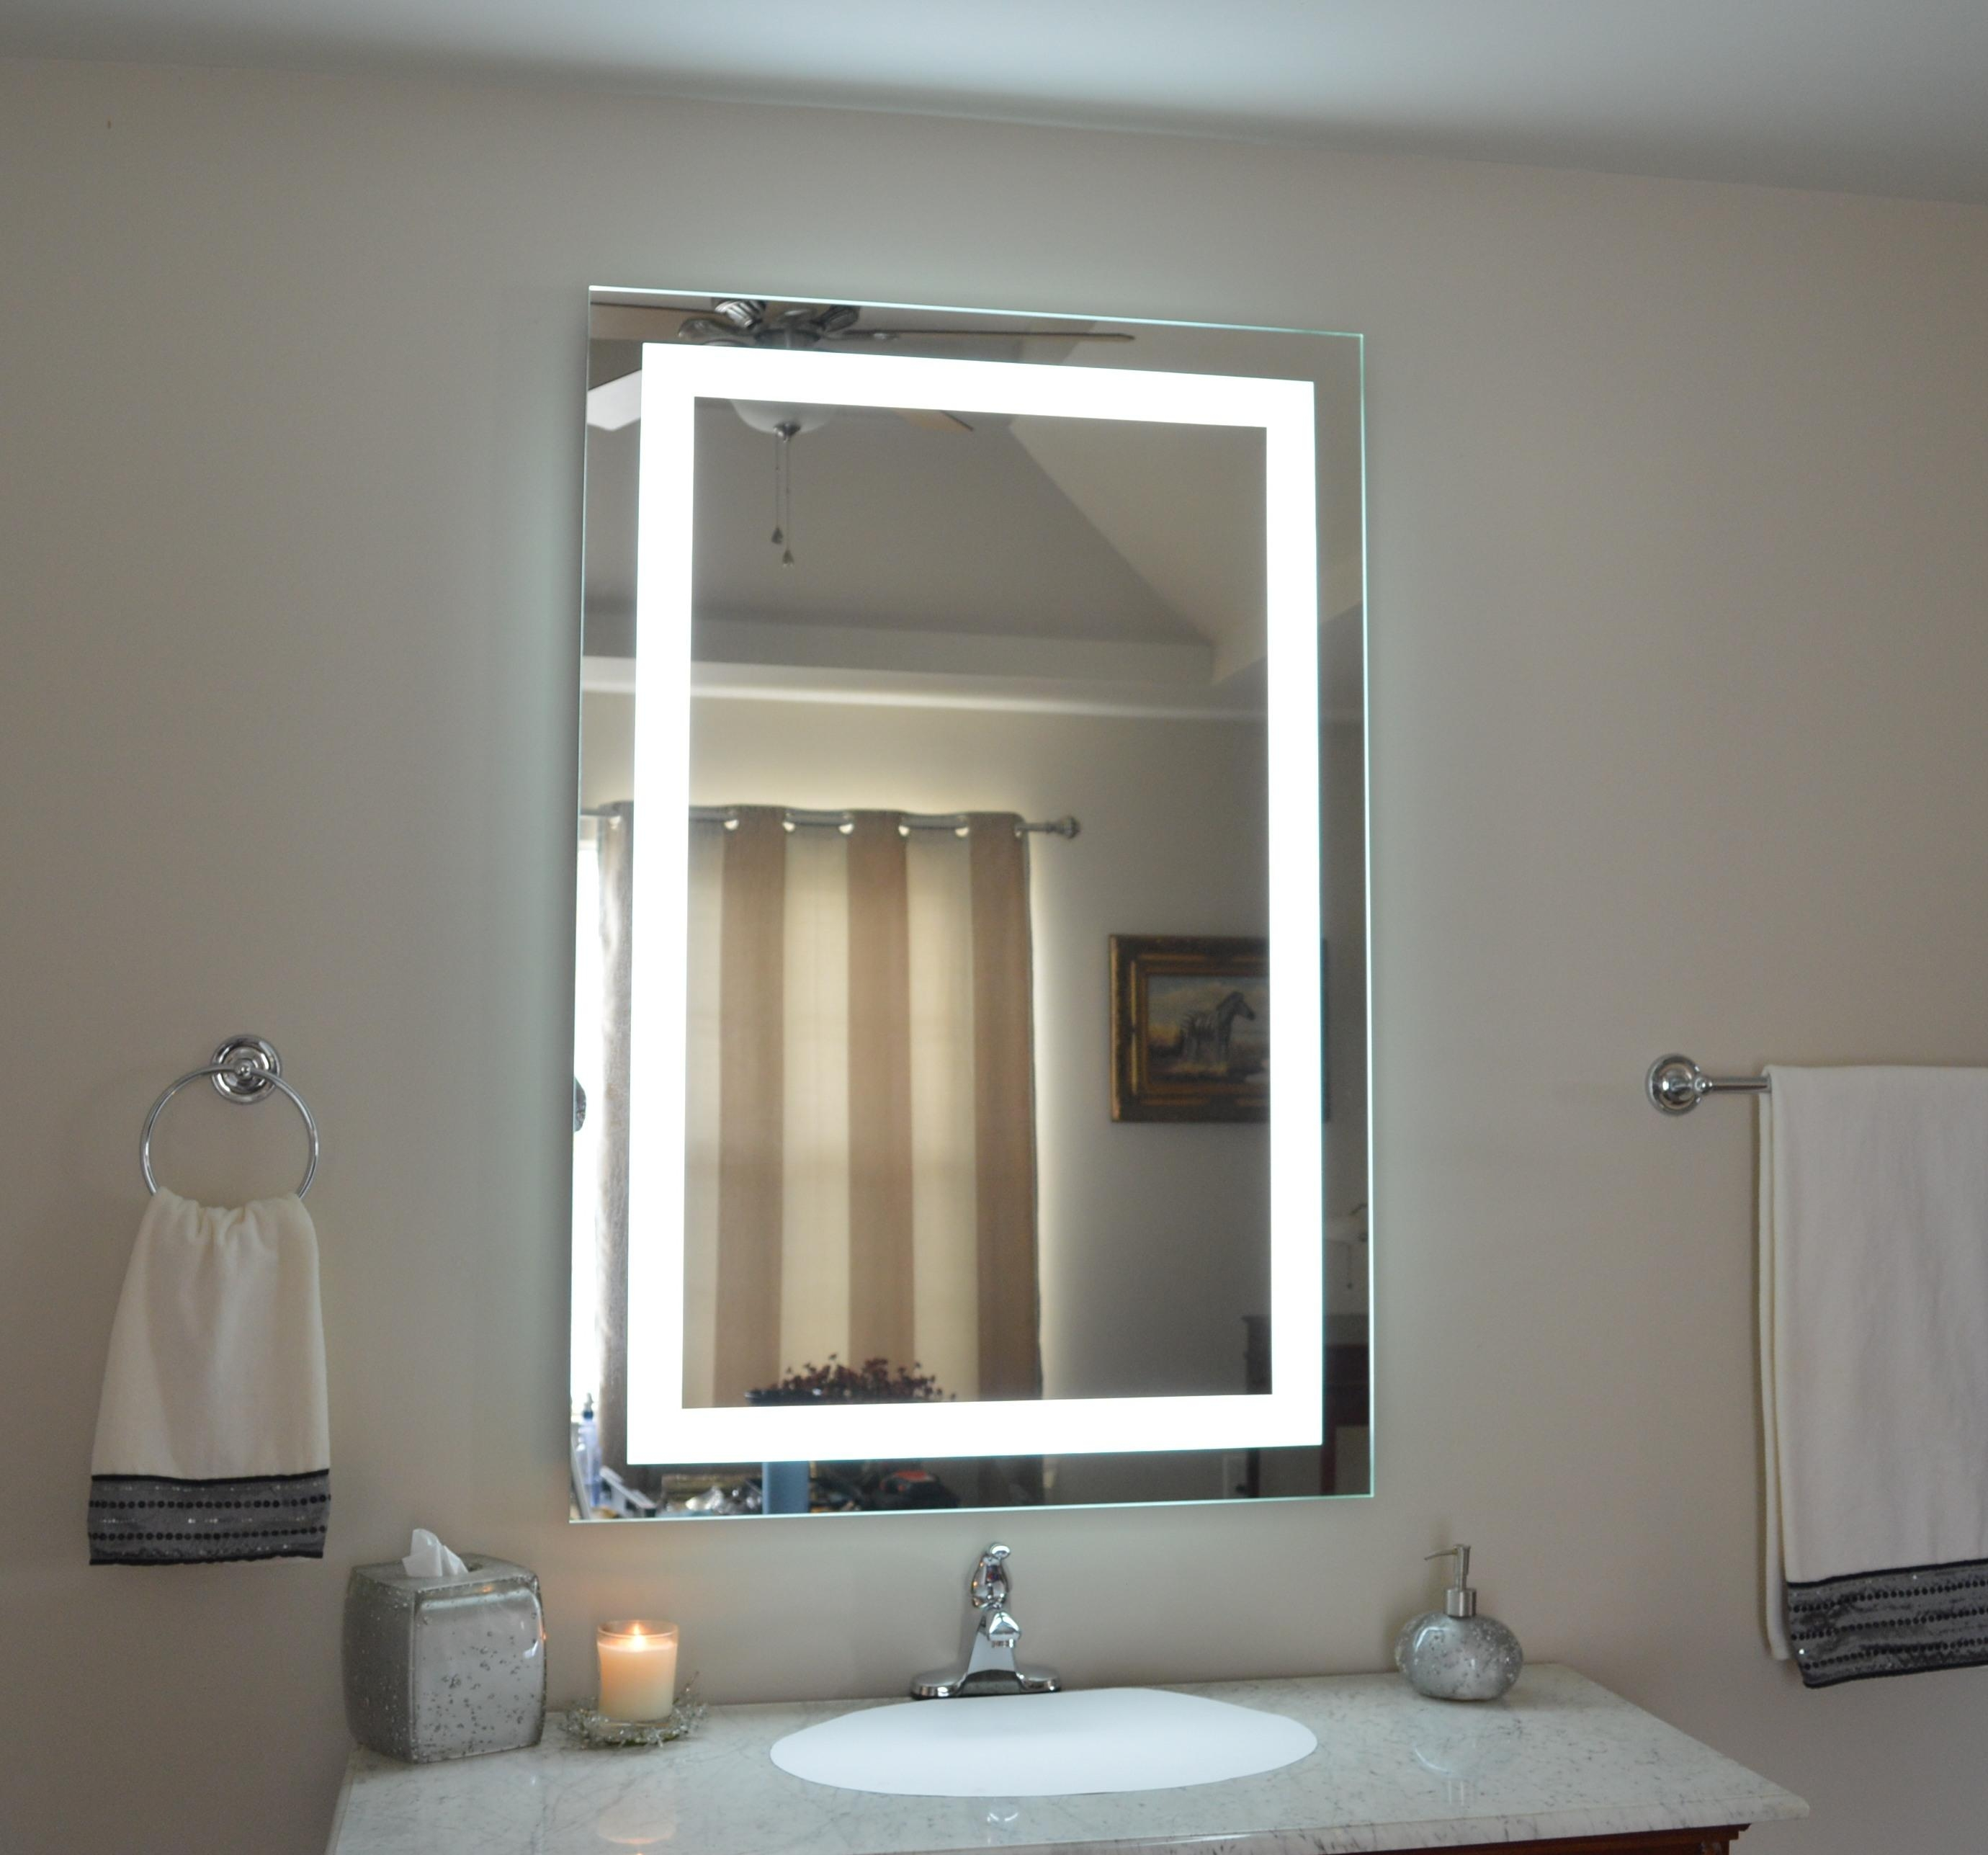 Lighted Vanity Mirror With Regard To Bathroom Lighted Vanity Mirrors (Image 19 of 20)